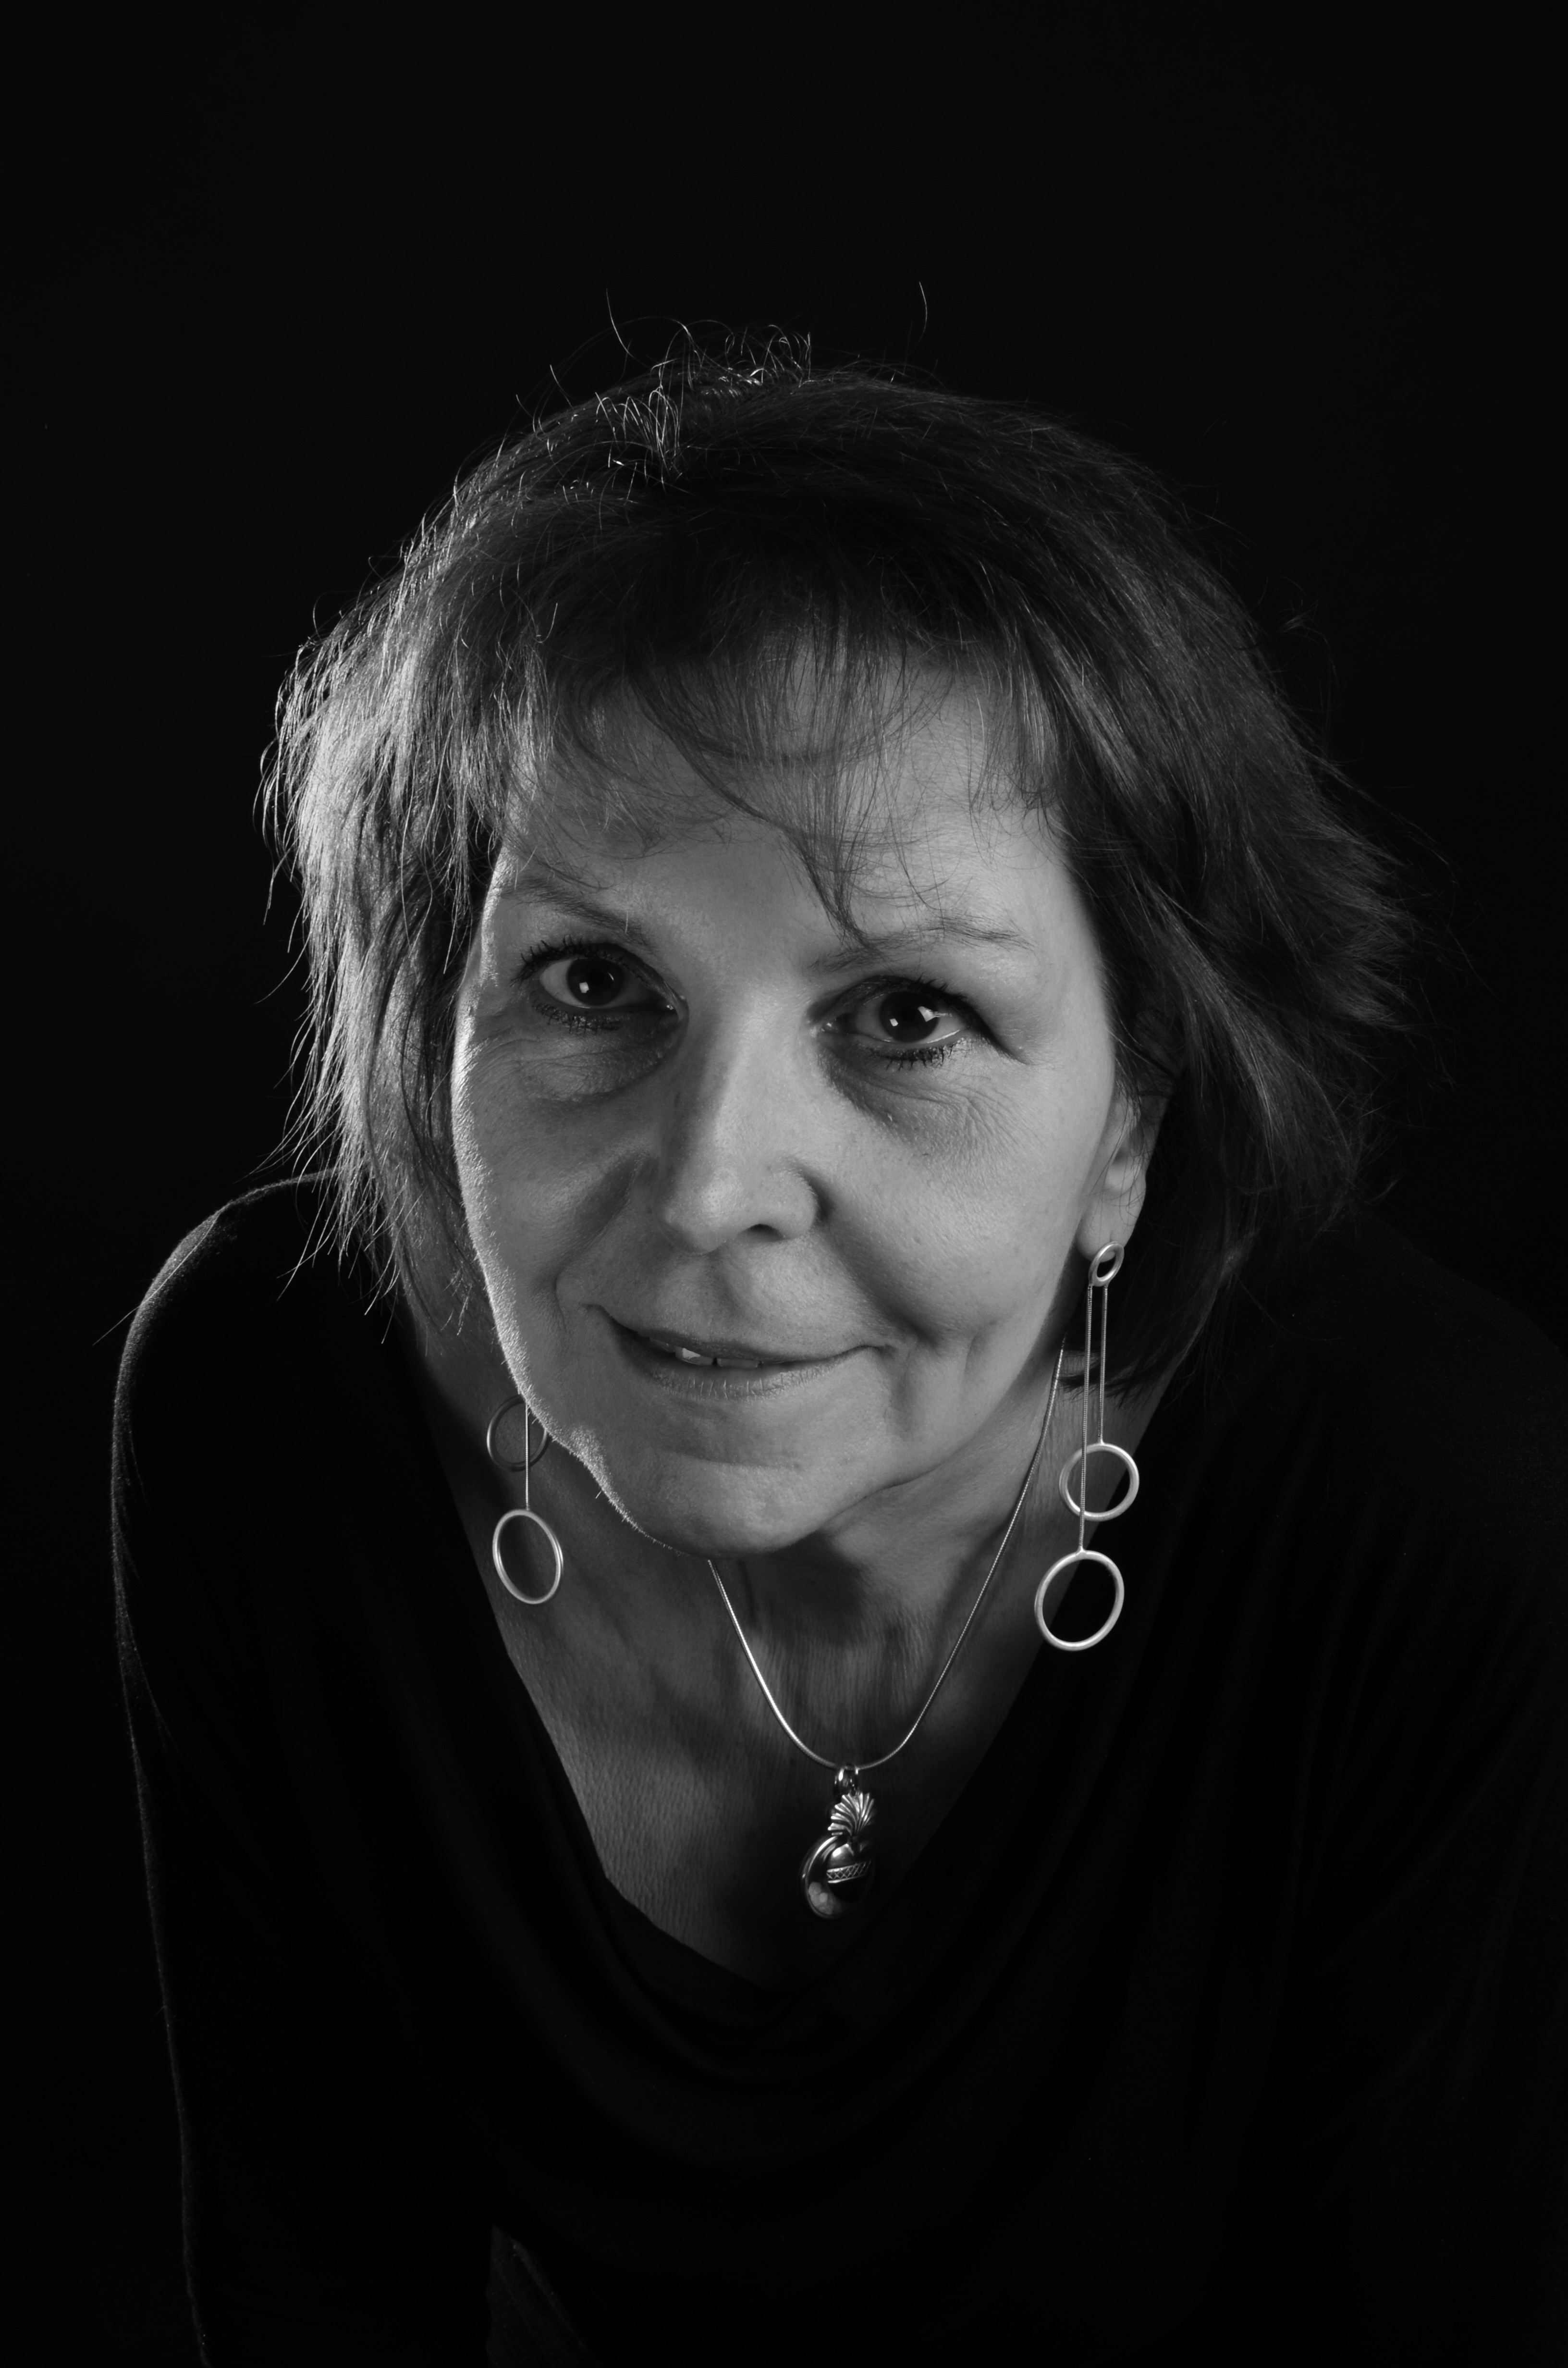 Christine Delory-Momberger